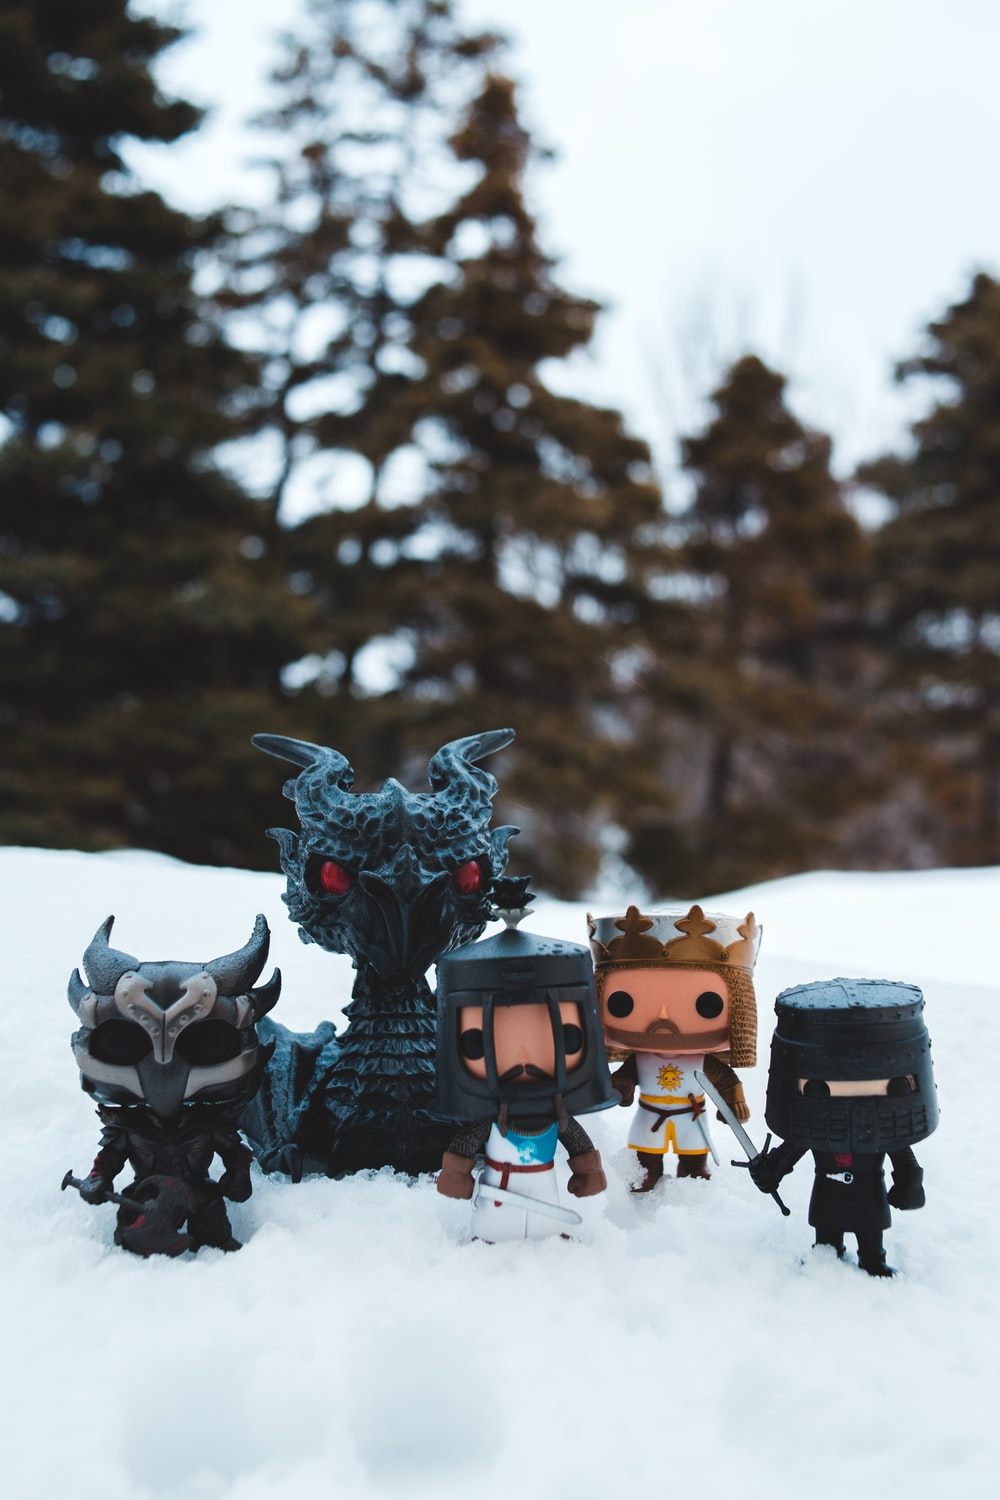 brown and black robot toys on snow covered ground